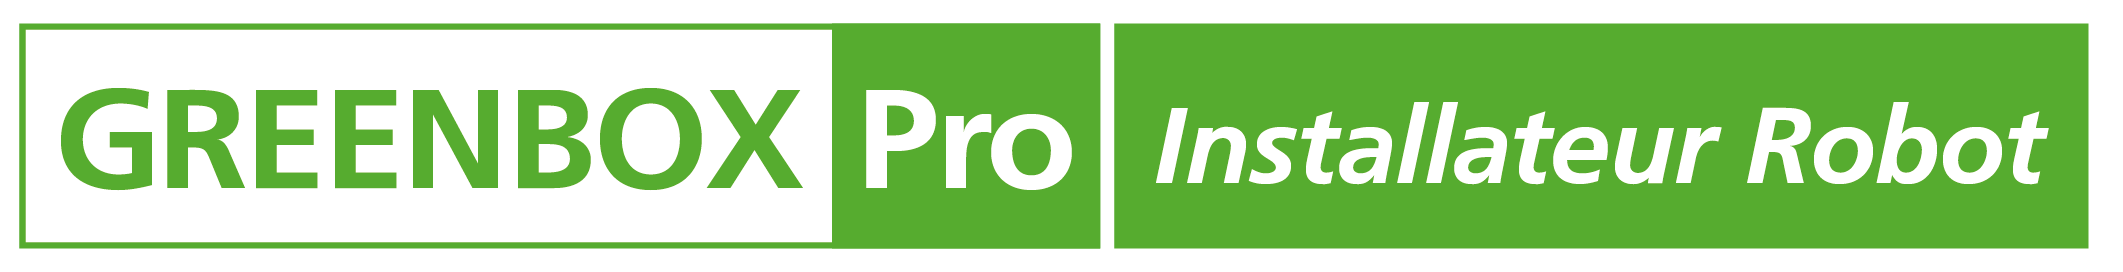 Formations GREENBOX-Pro